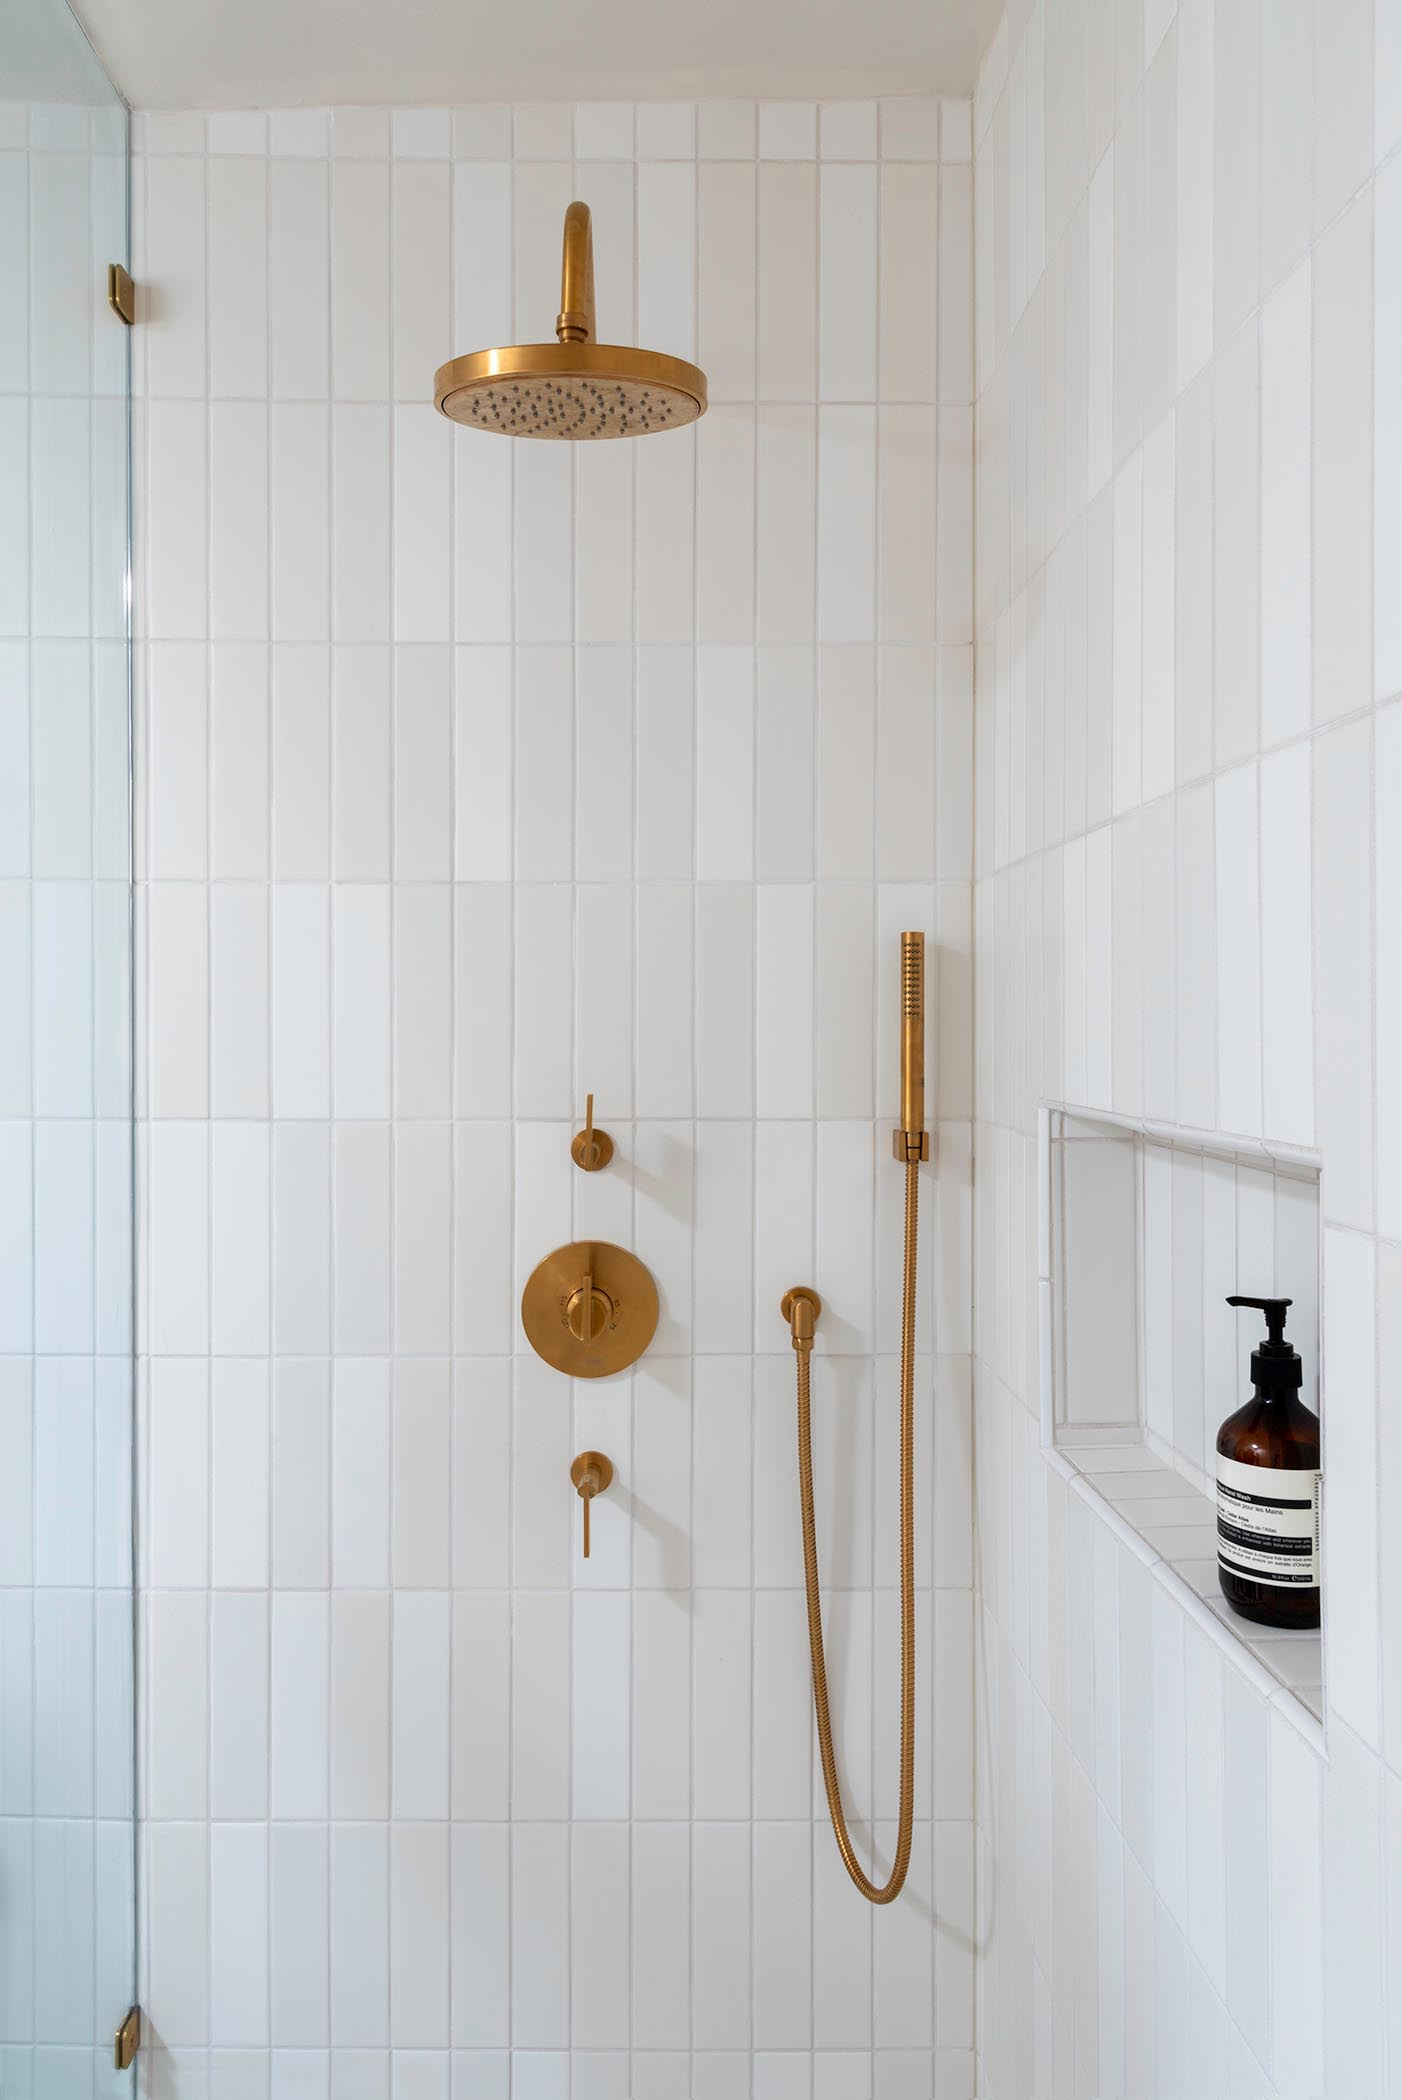 A modern white shower with a shelving niche and brass hardware.